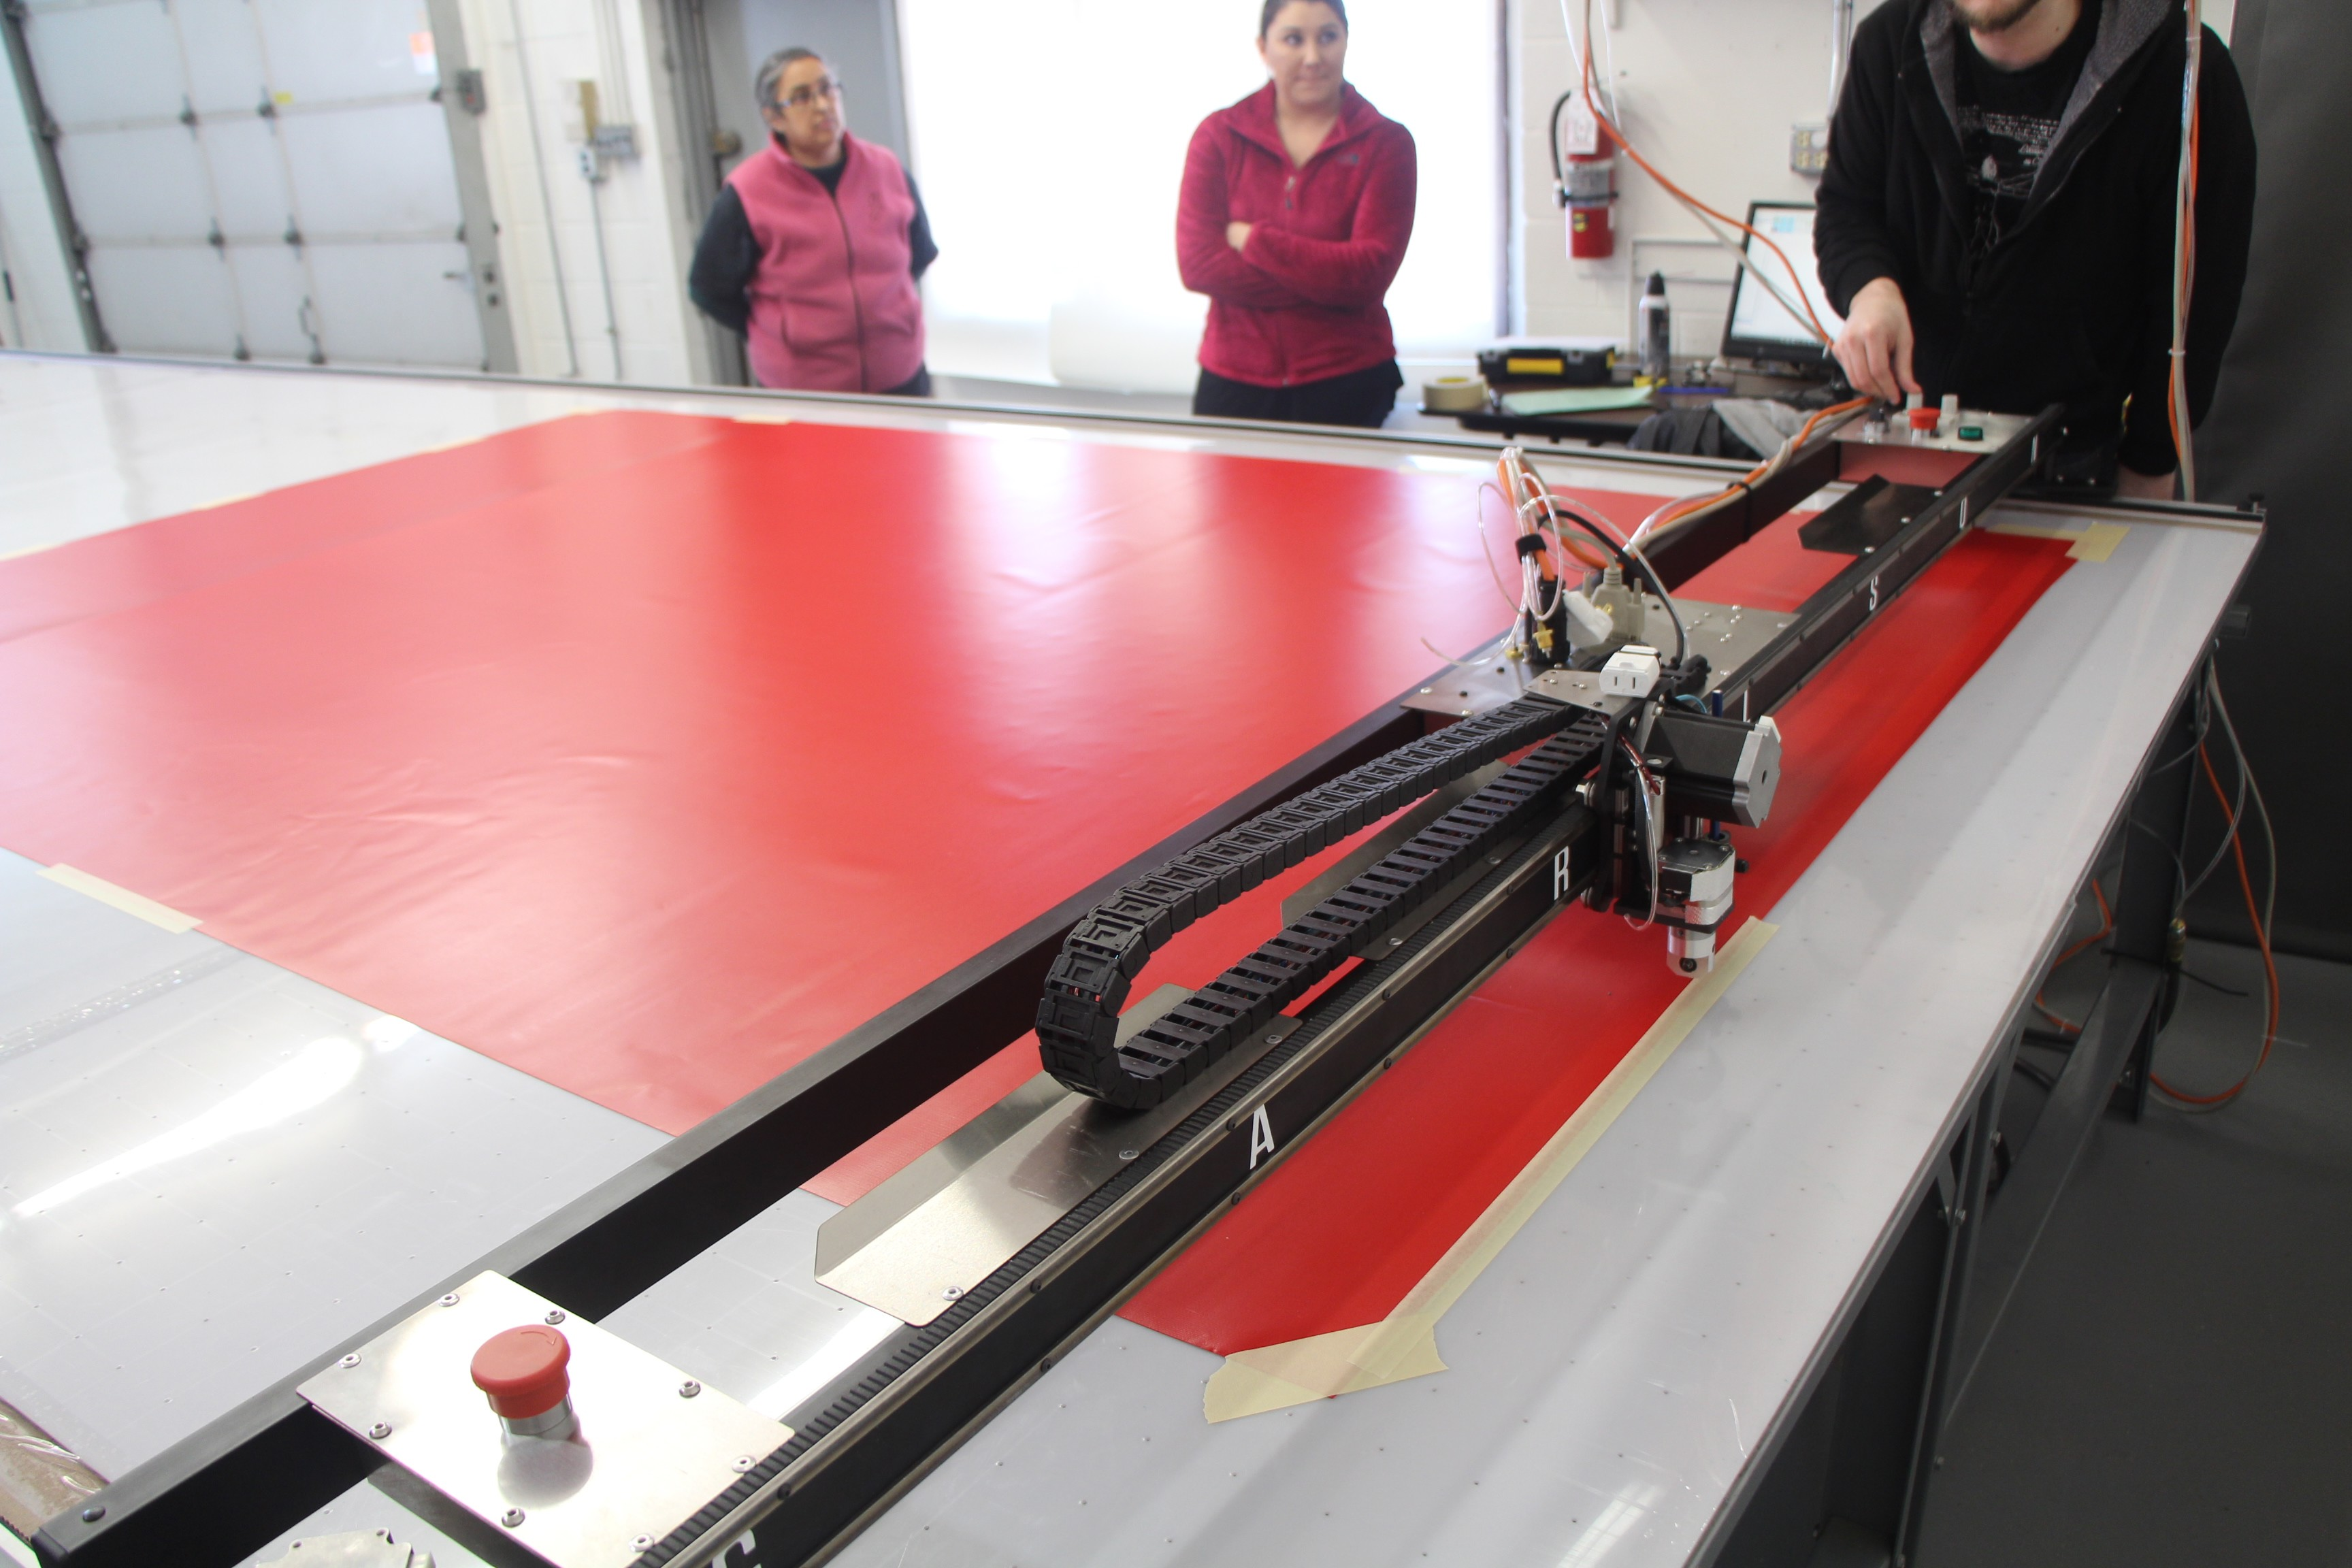 Once the machine is set on it's tracks, we start with a simple cut on some red vinyl. A basic triangle awning Matt prepared prior to install.